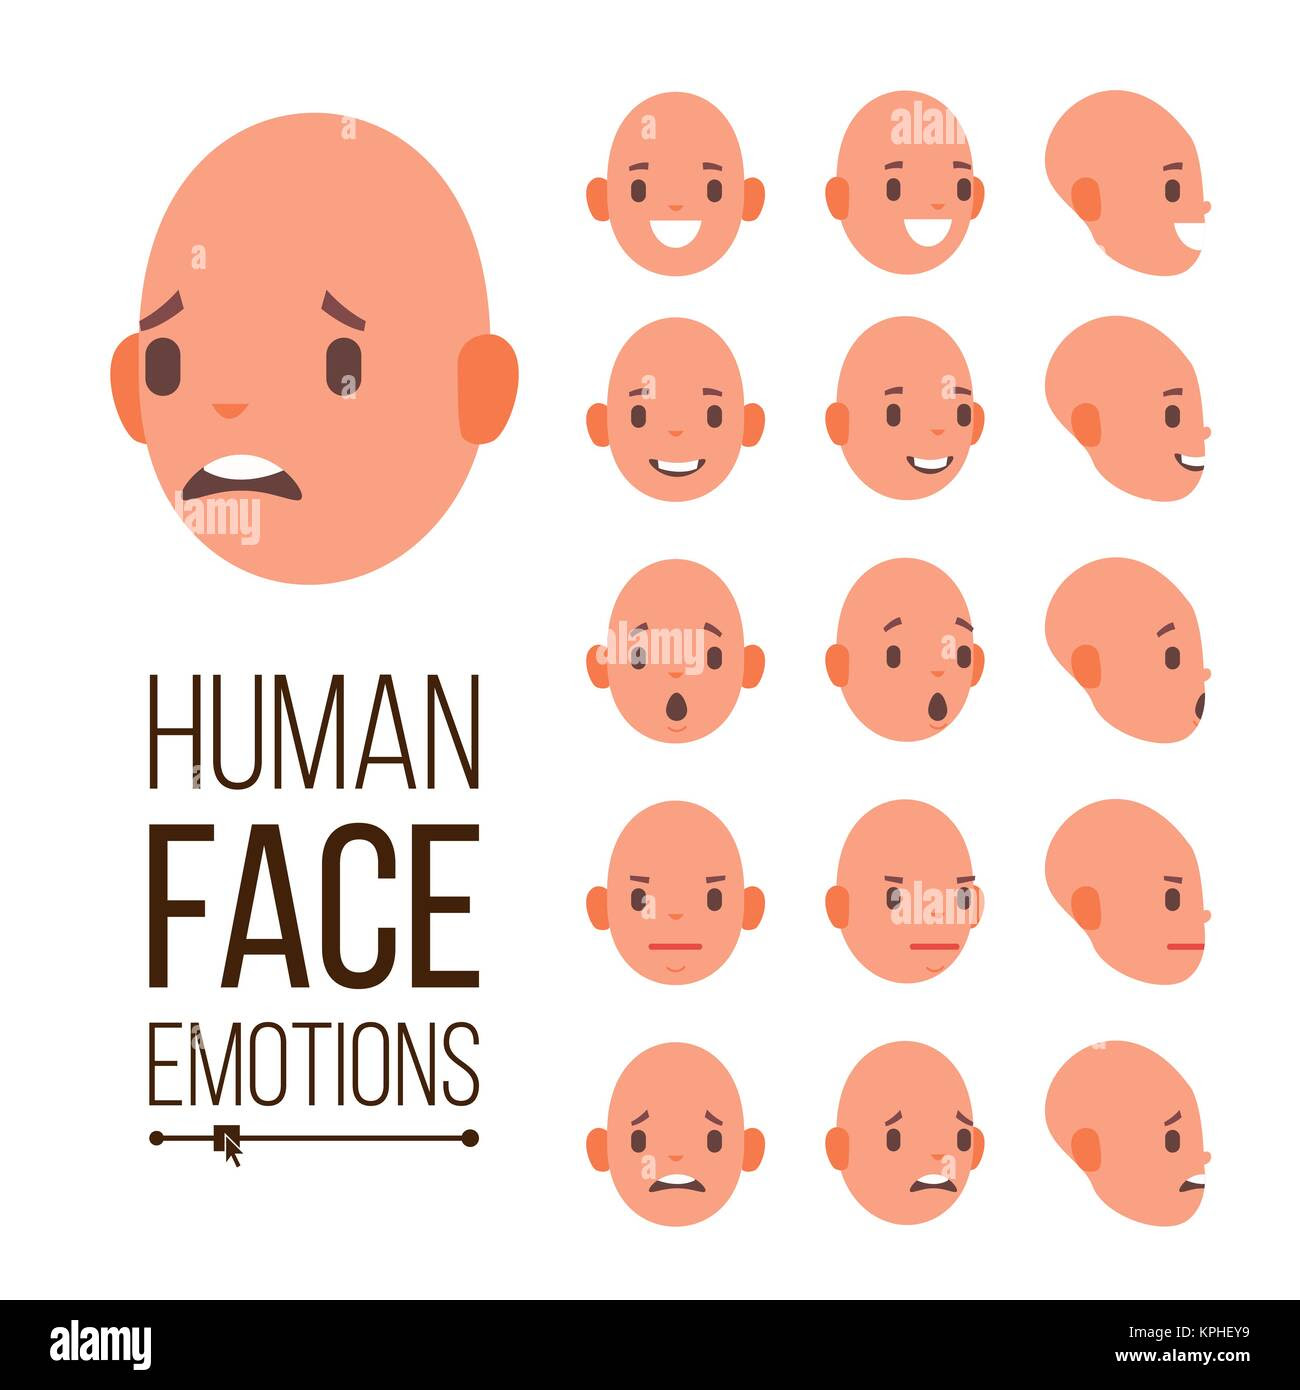 Human Emotions Vector Face Smiling Angry Surprised Laughing